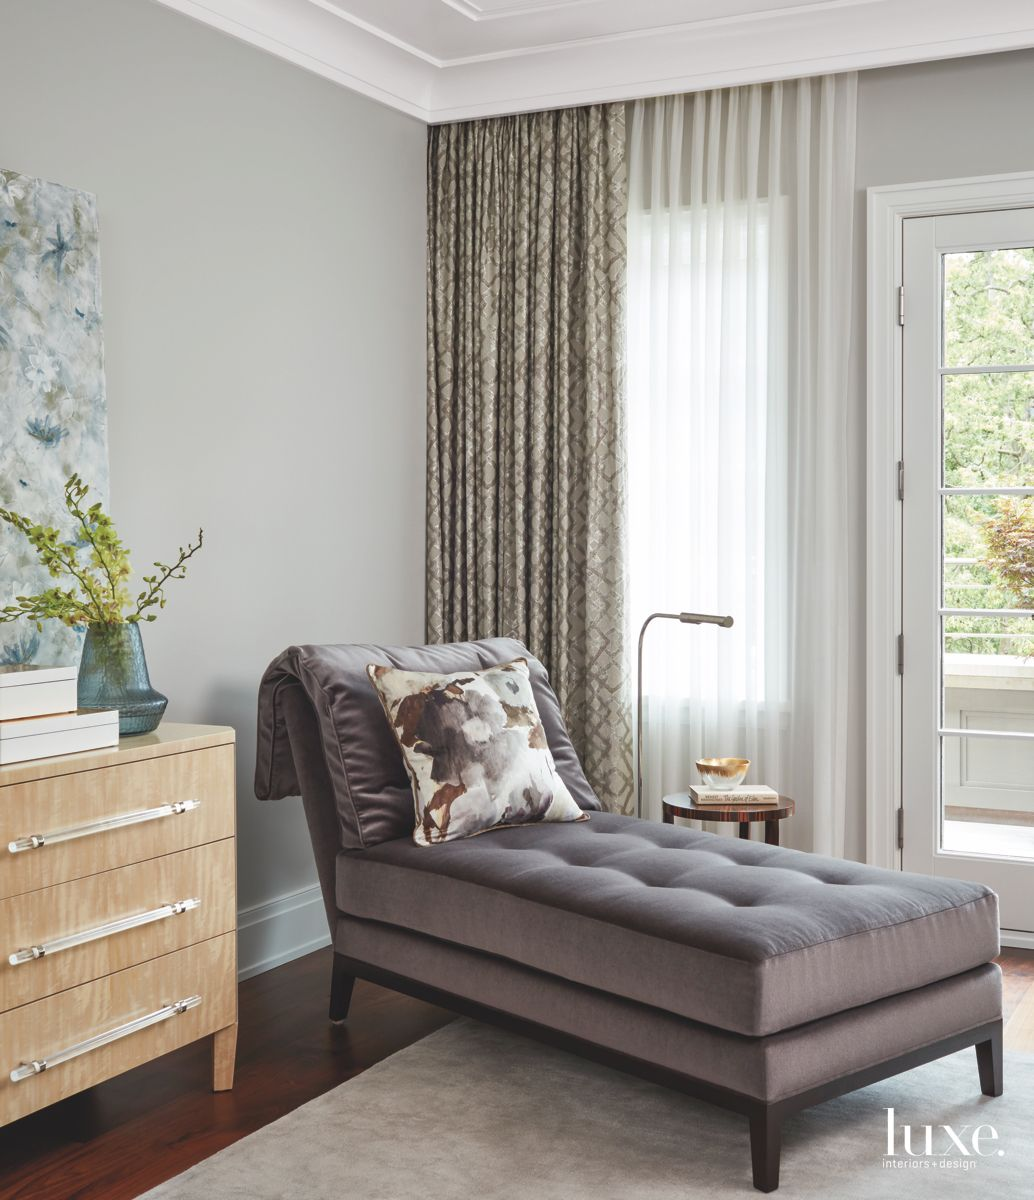 Gray Master Bedroom Chaise Lounge Chair with Dresser